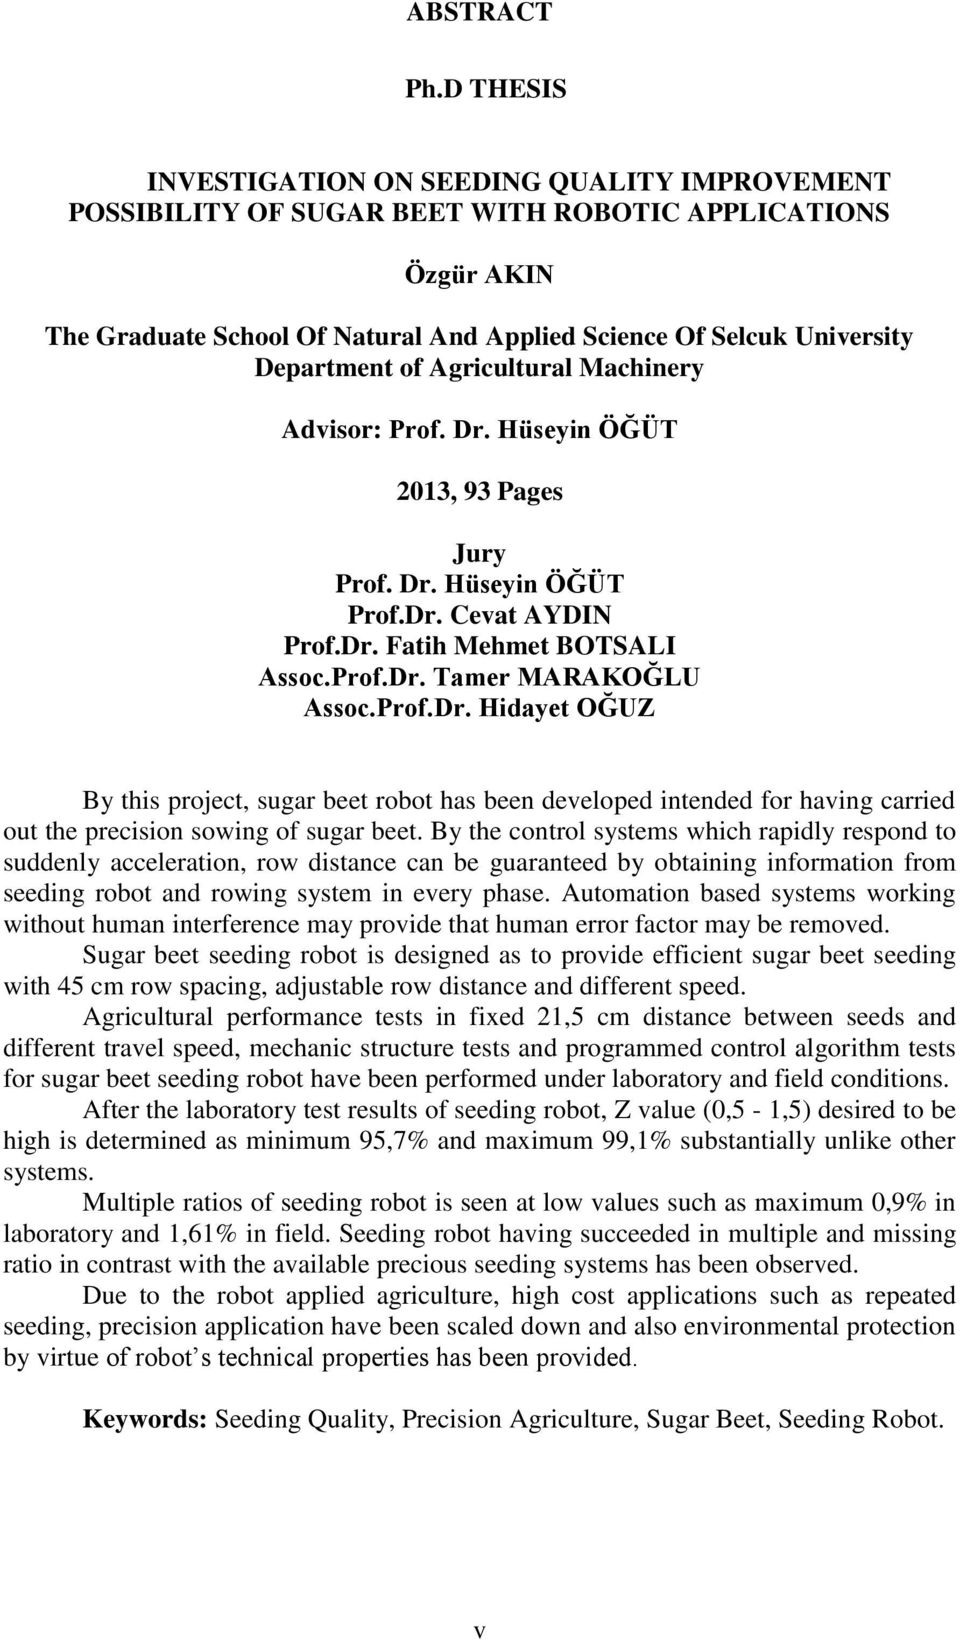 of Agricultural Machinery Advisor: Prof. Dr. Hüseyin ÖĞÜT 2013, 93 Pages Jury Prof. Dr. Hüseyin ÖĞÜT Prof.Dr. Cevat AYDIN Prof.Dr. Fatih Mehmet BOTSALI Assoc.Prof.Dr. Tamer MARAKOĞLU Assoc.Prof.Dr. Hidayet OĞUZ By this project, sugar beet robot has been developed intended for having carried out the precision sowing of sugar beet.